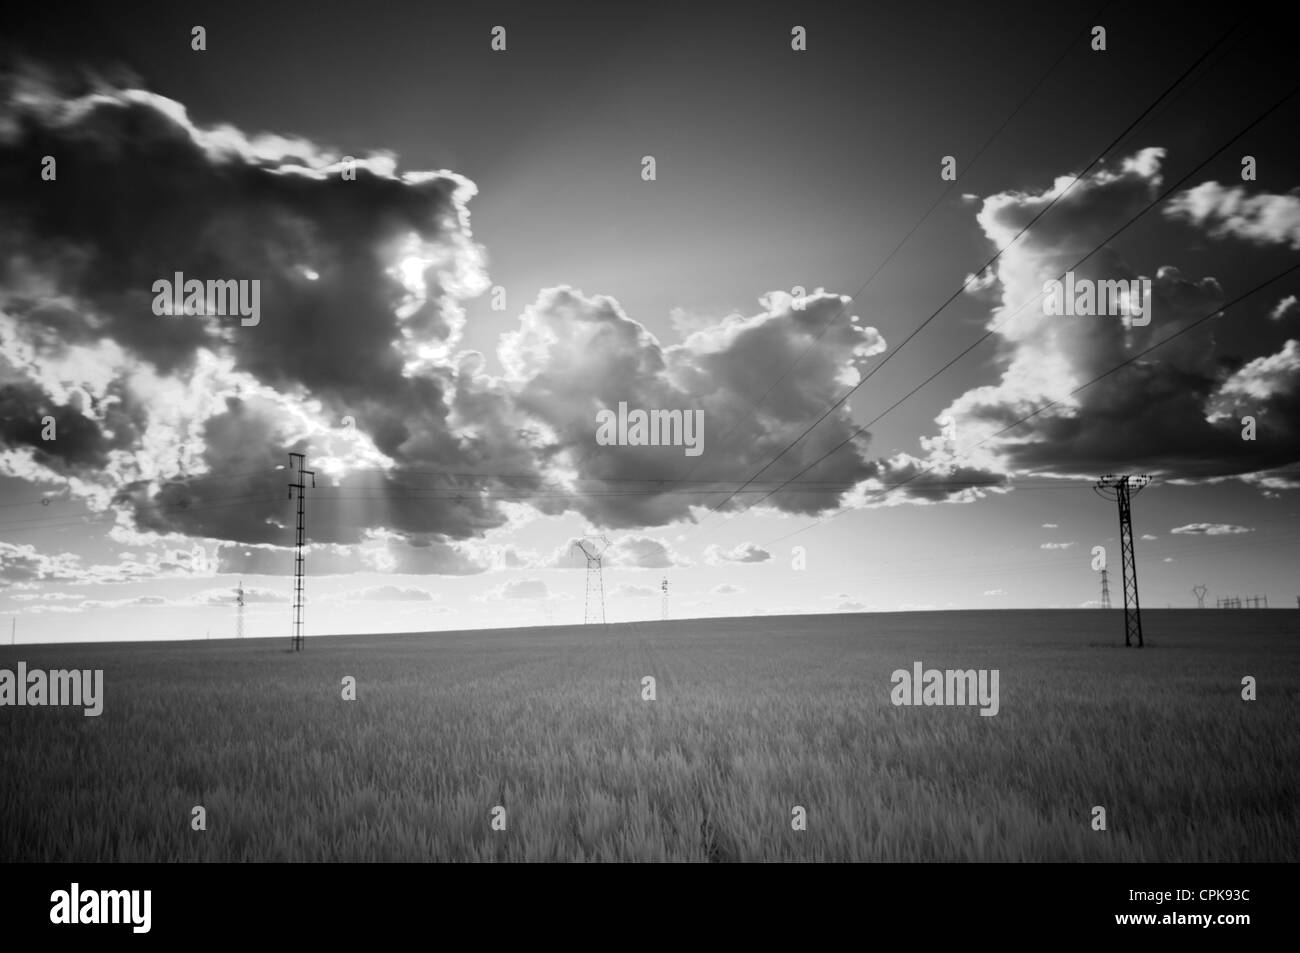 Infrared image of a wheat field and power line, Sanlucar la Mayor, Seville, Spain - Stock Image